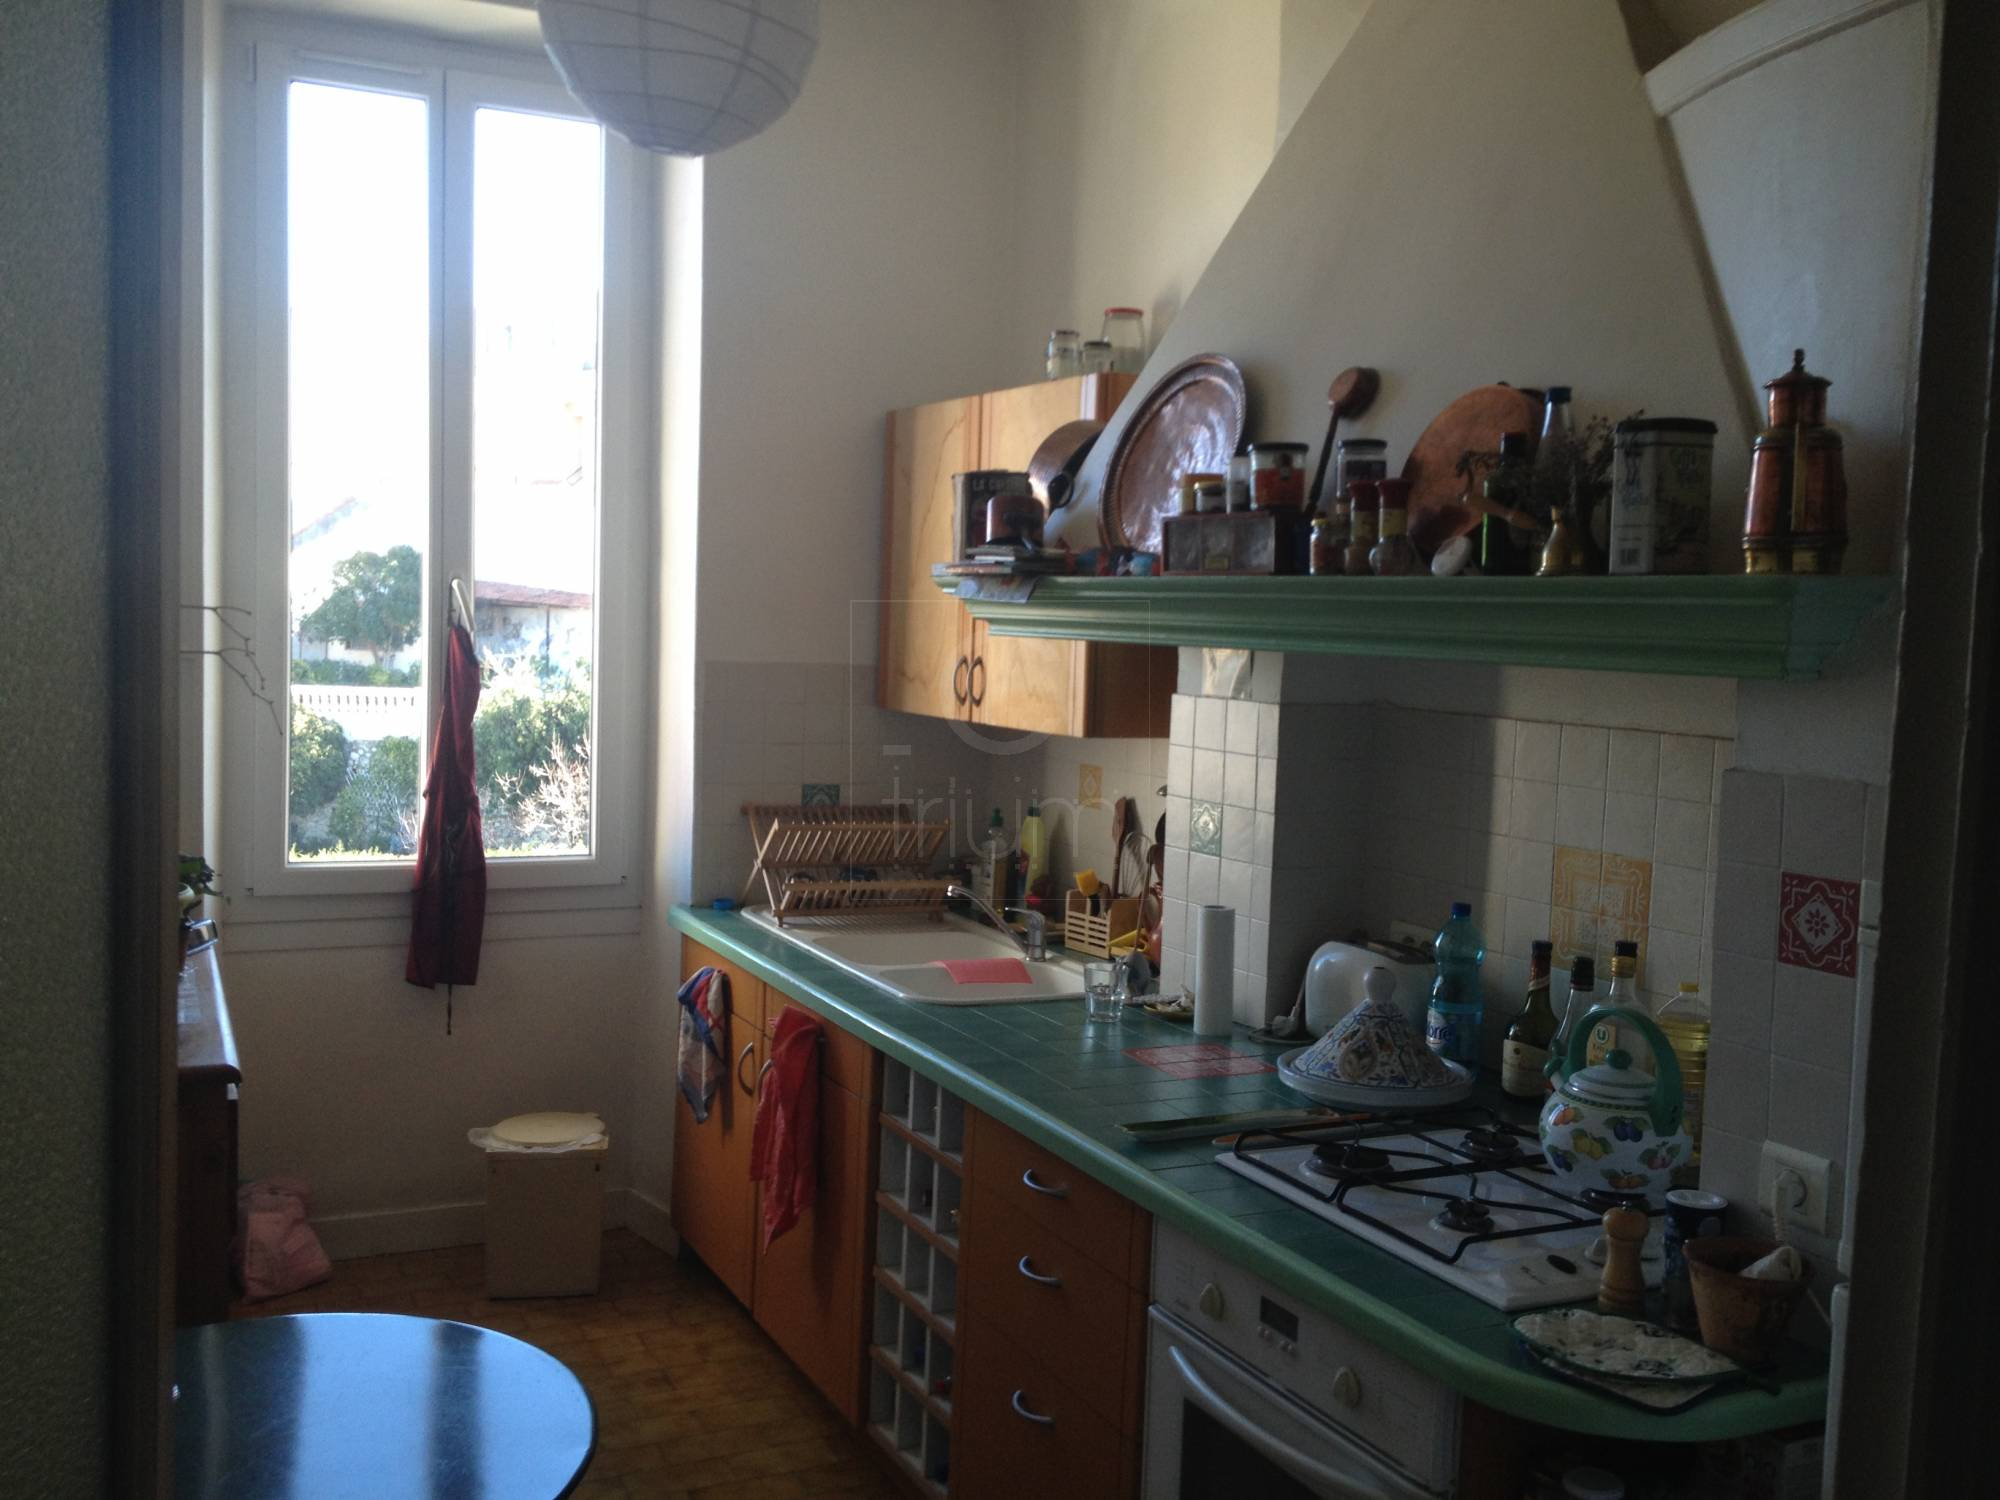 Vente appartement t2 f2 marseille 7eme endoume dernier for T2 marseille